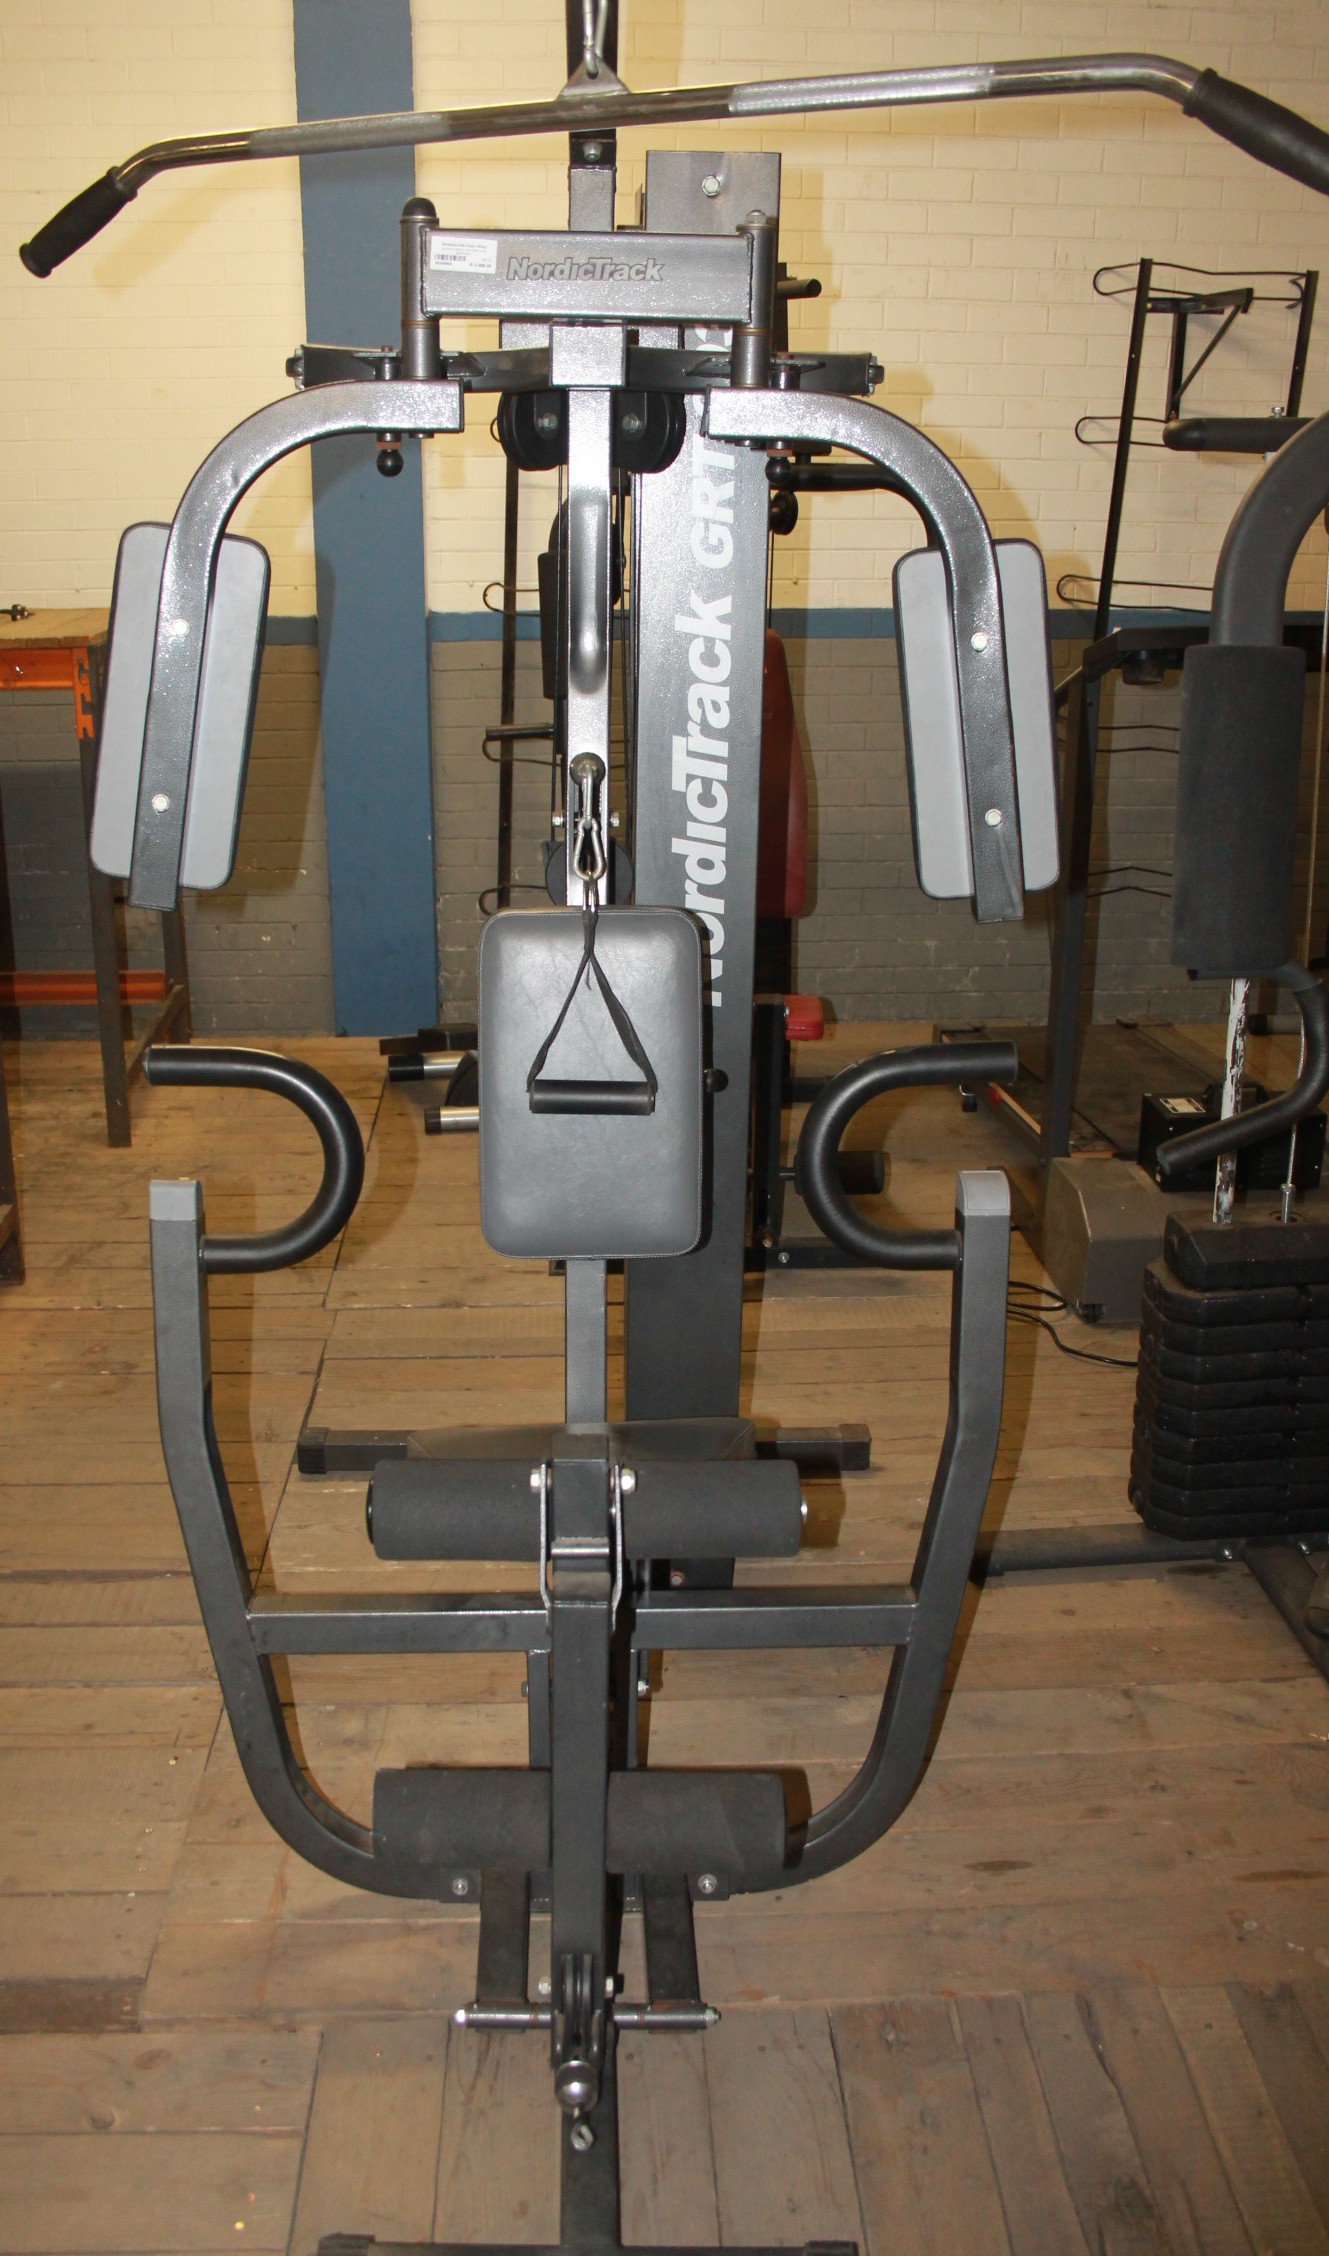 Norditrack gym machine S026995a #Rosettenvillepawnshop